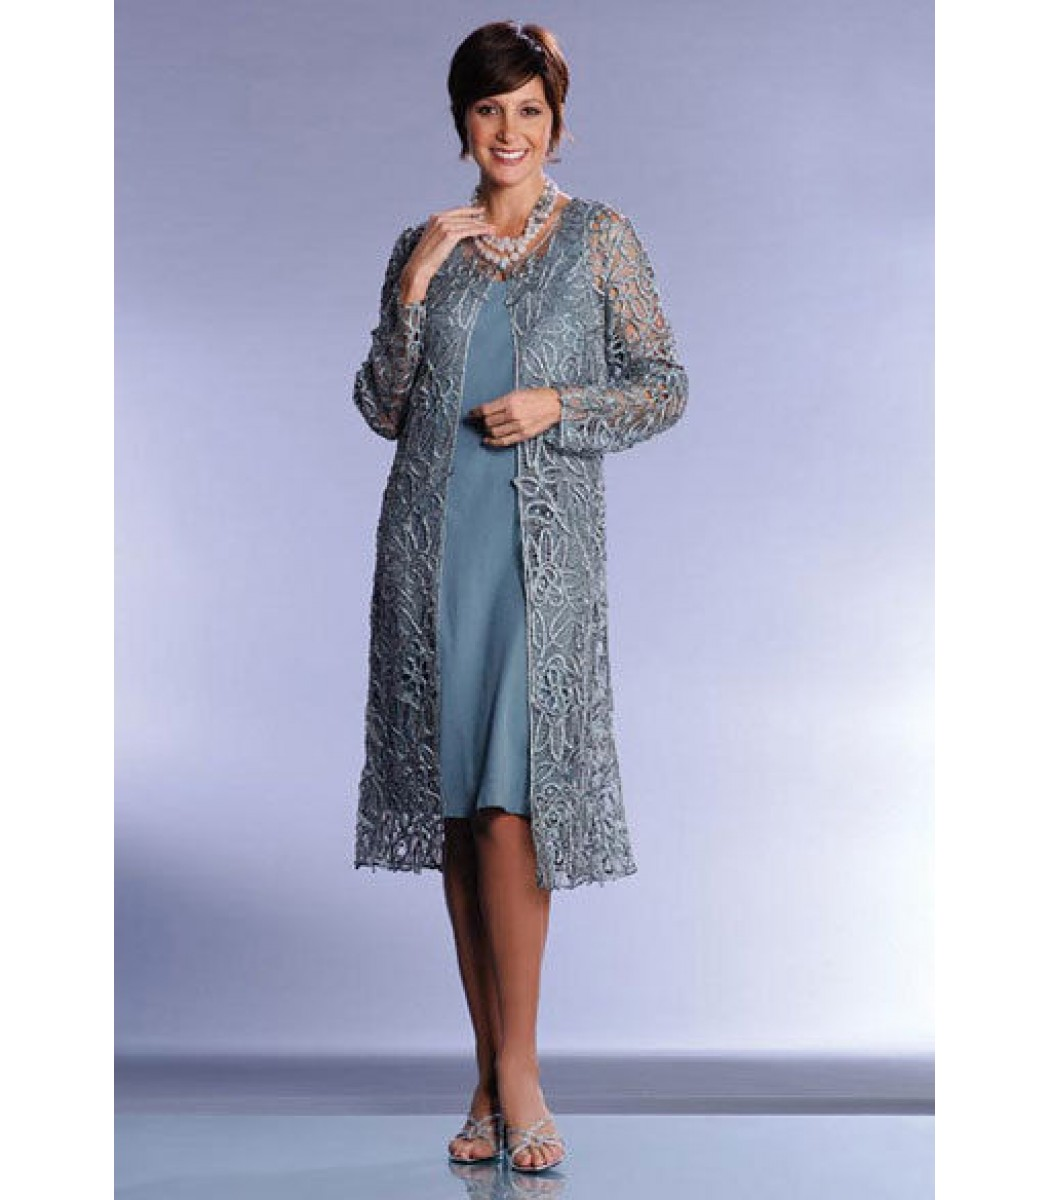 Soulmates C880 Frosty Pale Blue Formal Dress Gown Duster Jacket Size ...